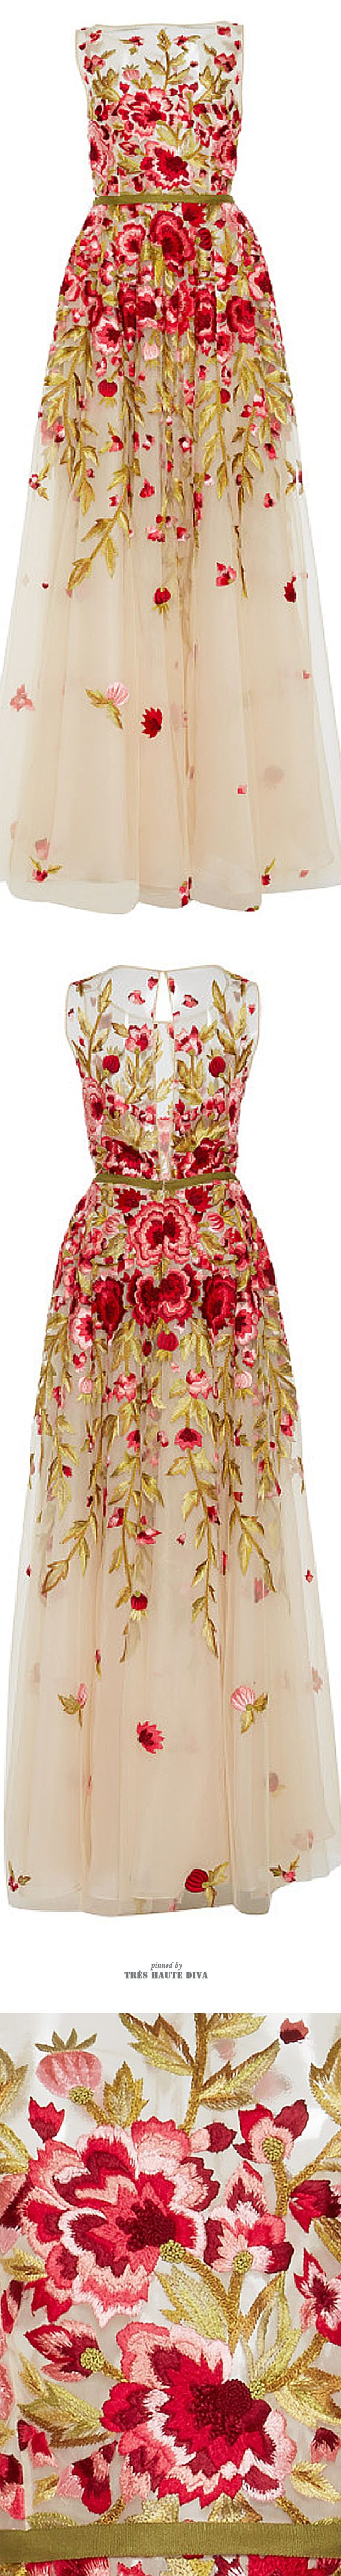 Naeem Khan Floral Embroidered Sleeveless Gown